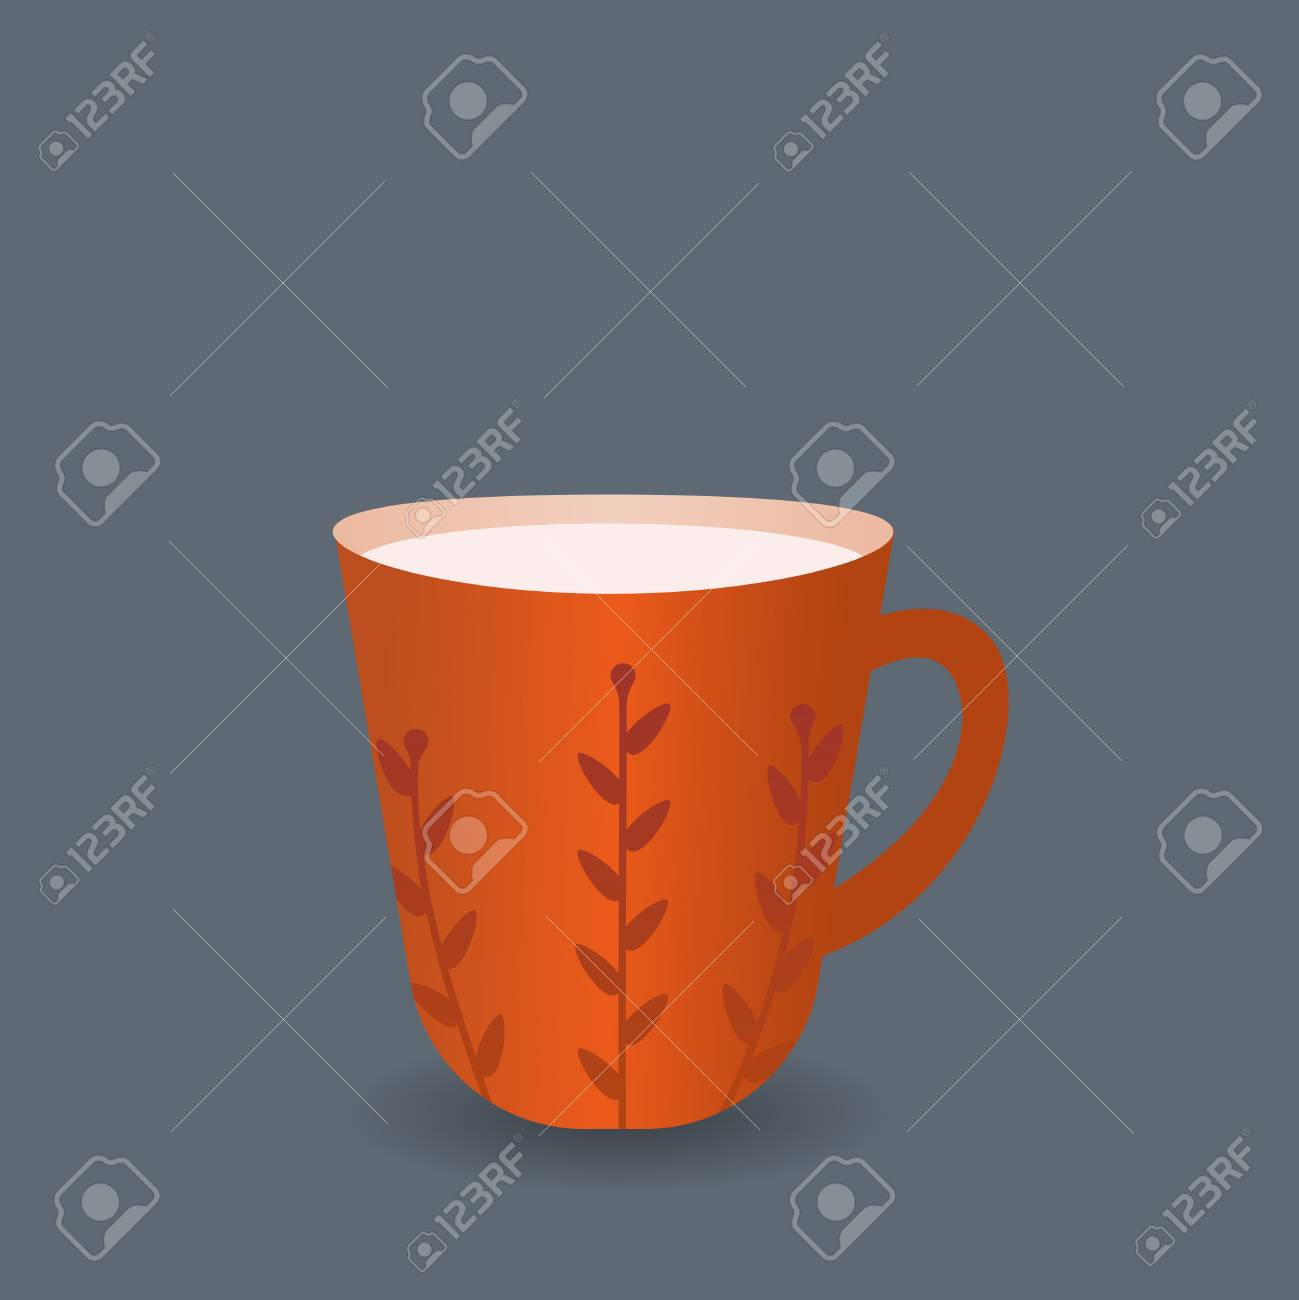 Mug A Cafe Coffee Mug Vector Icon The Symbol Of Coffee Break Rest In A